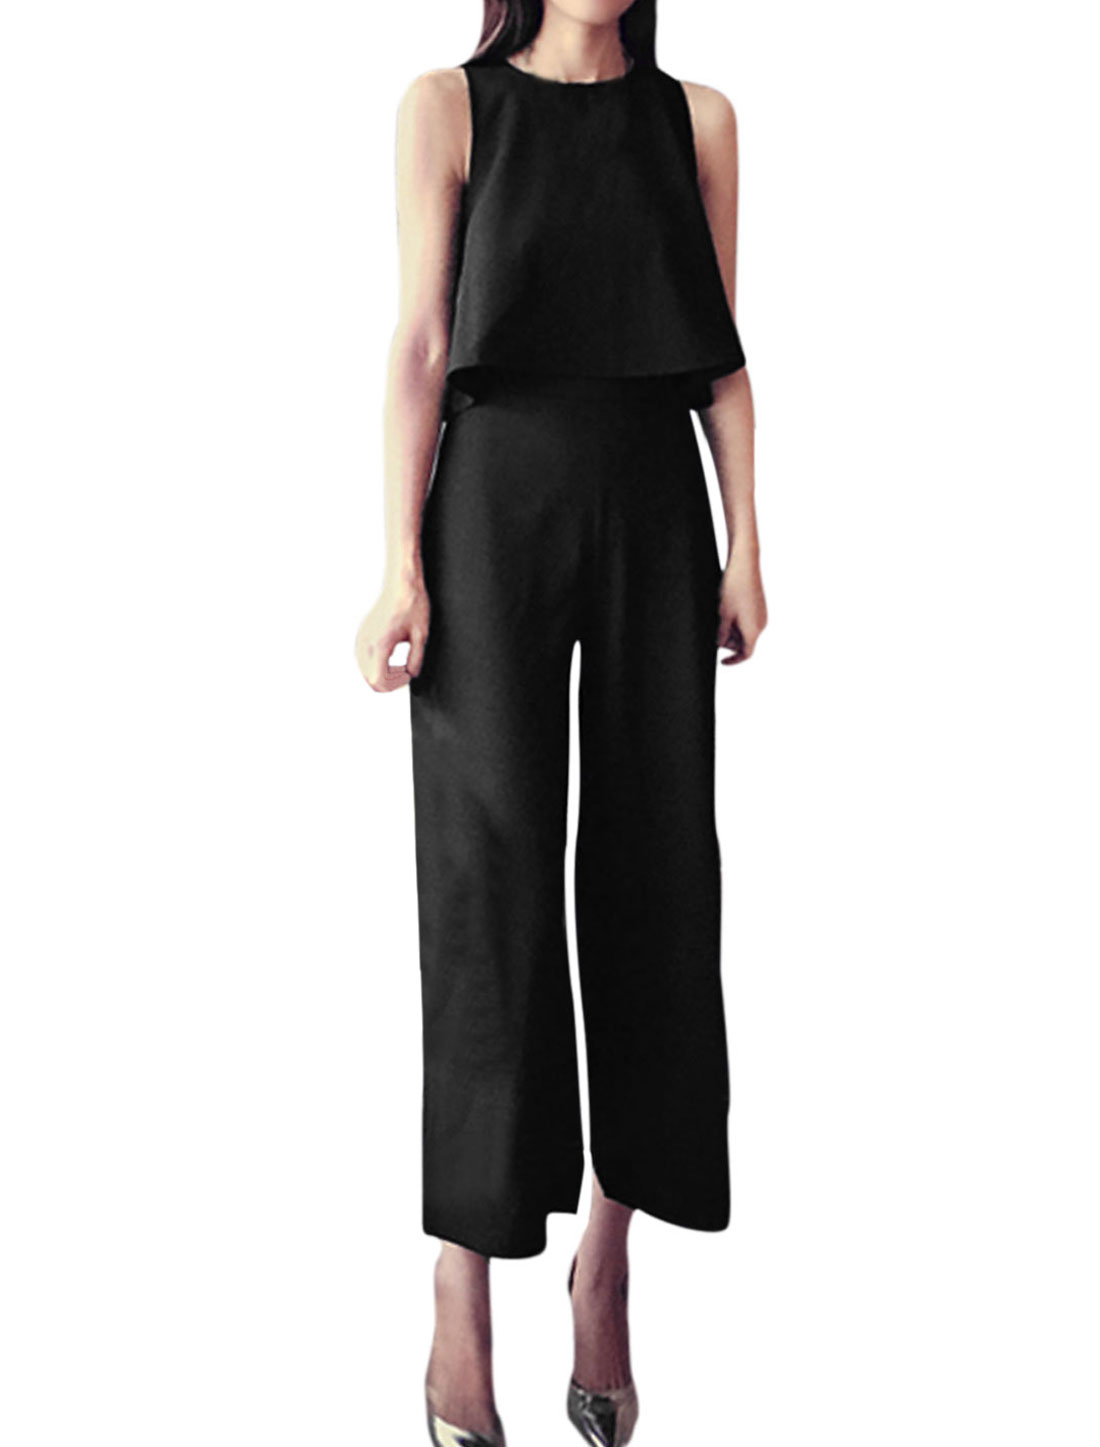 Ladies Sleeveless Tops w Wide Leg Casual Cropped Trousers Set Black XS